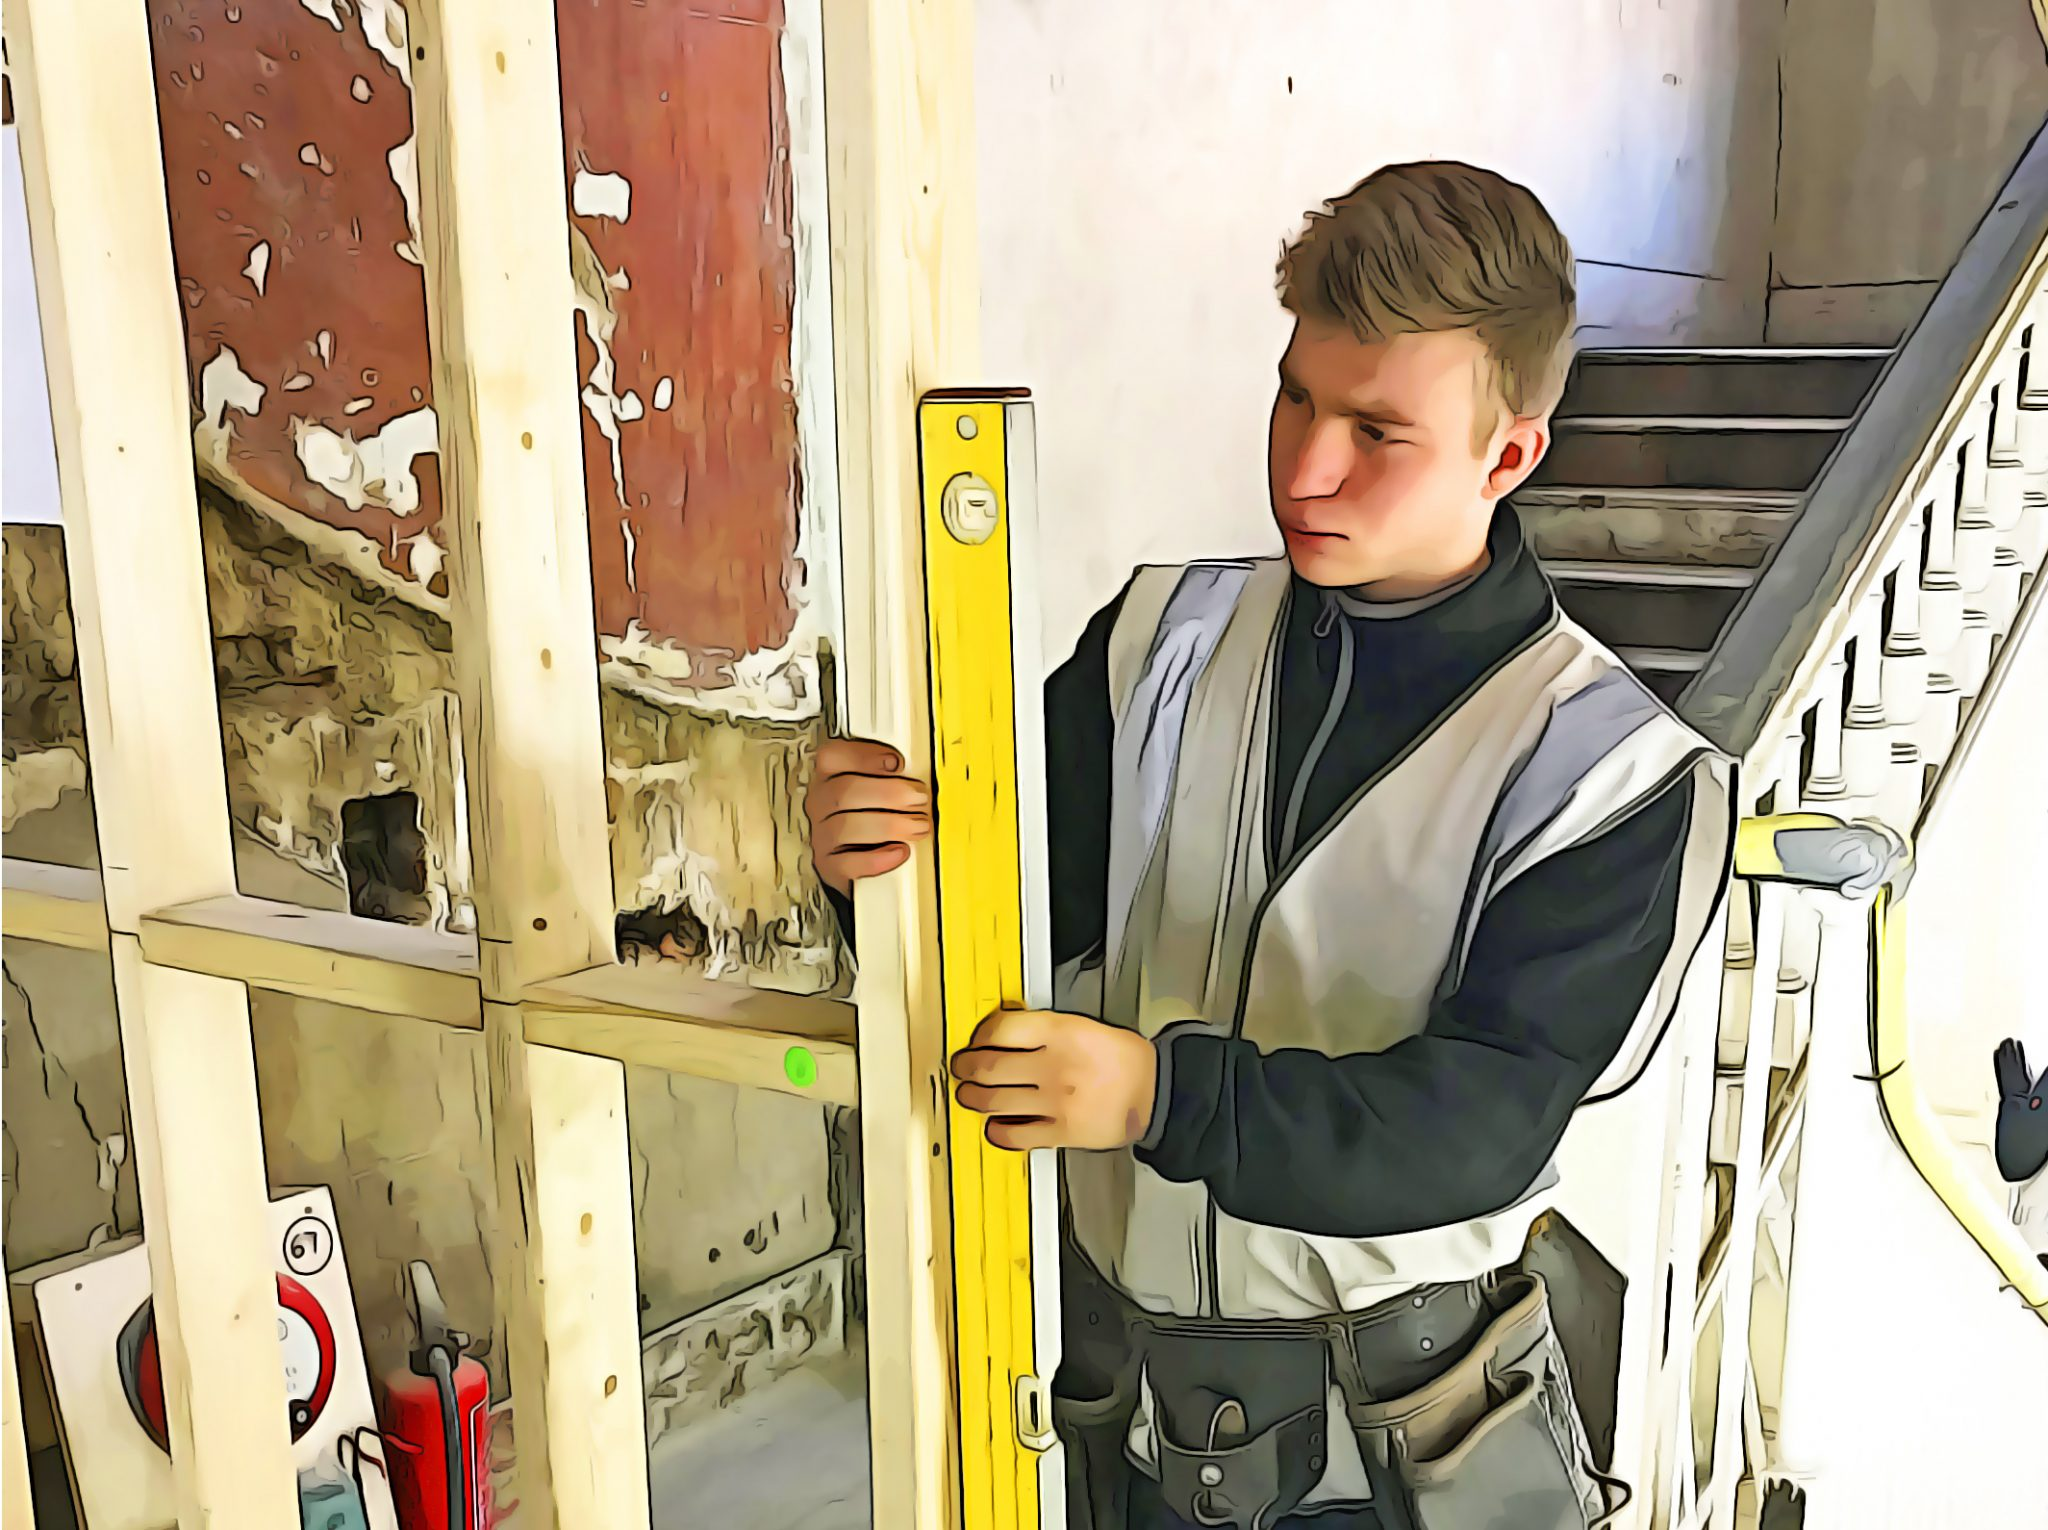 A day in the life of a construction apprentice